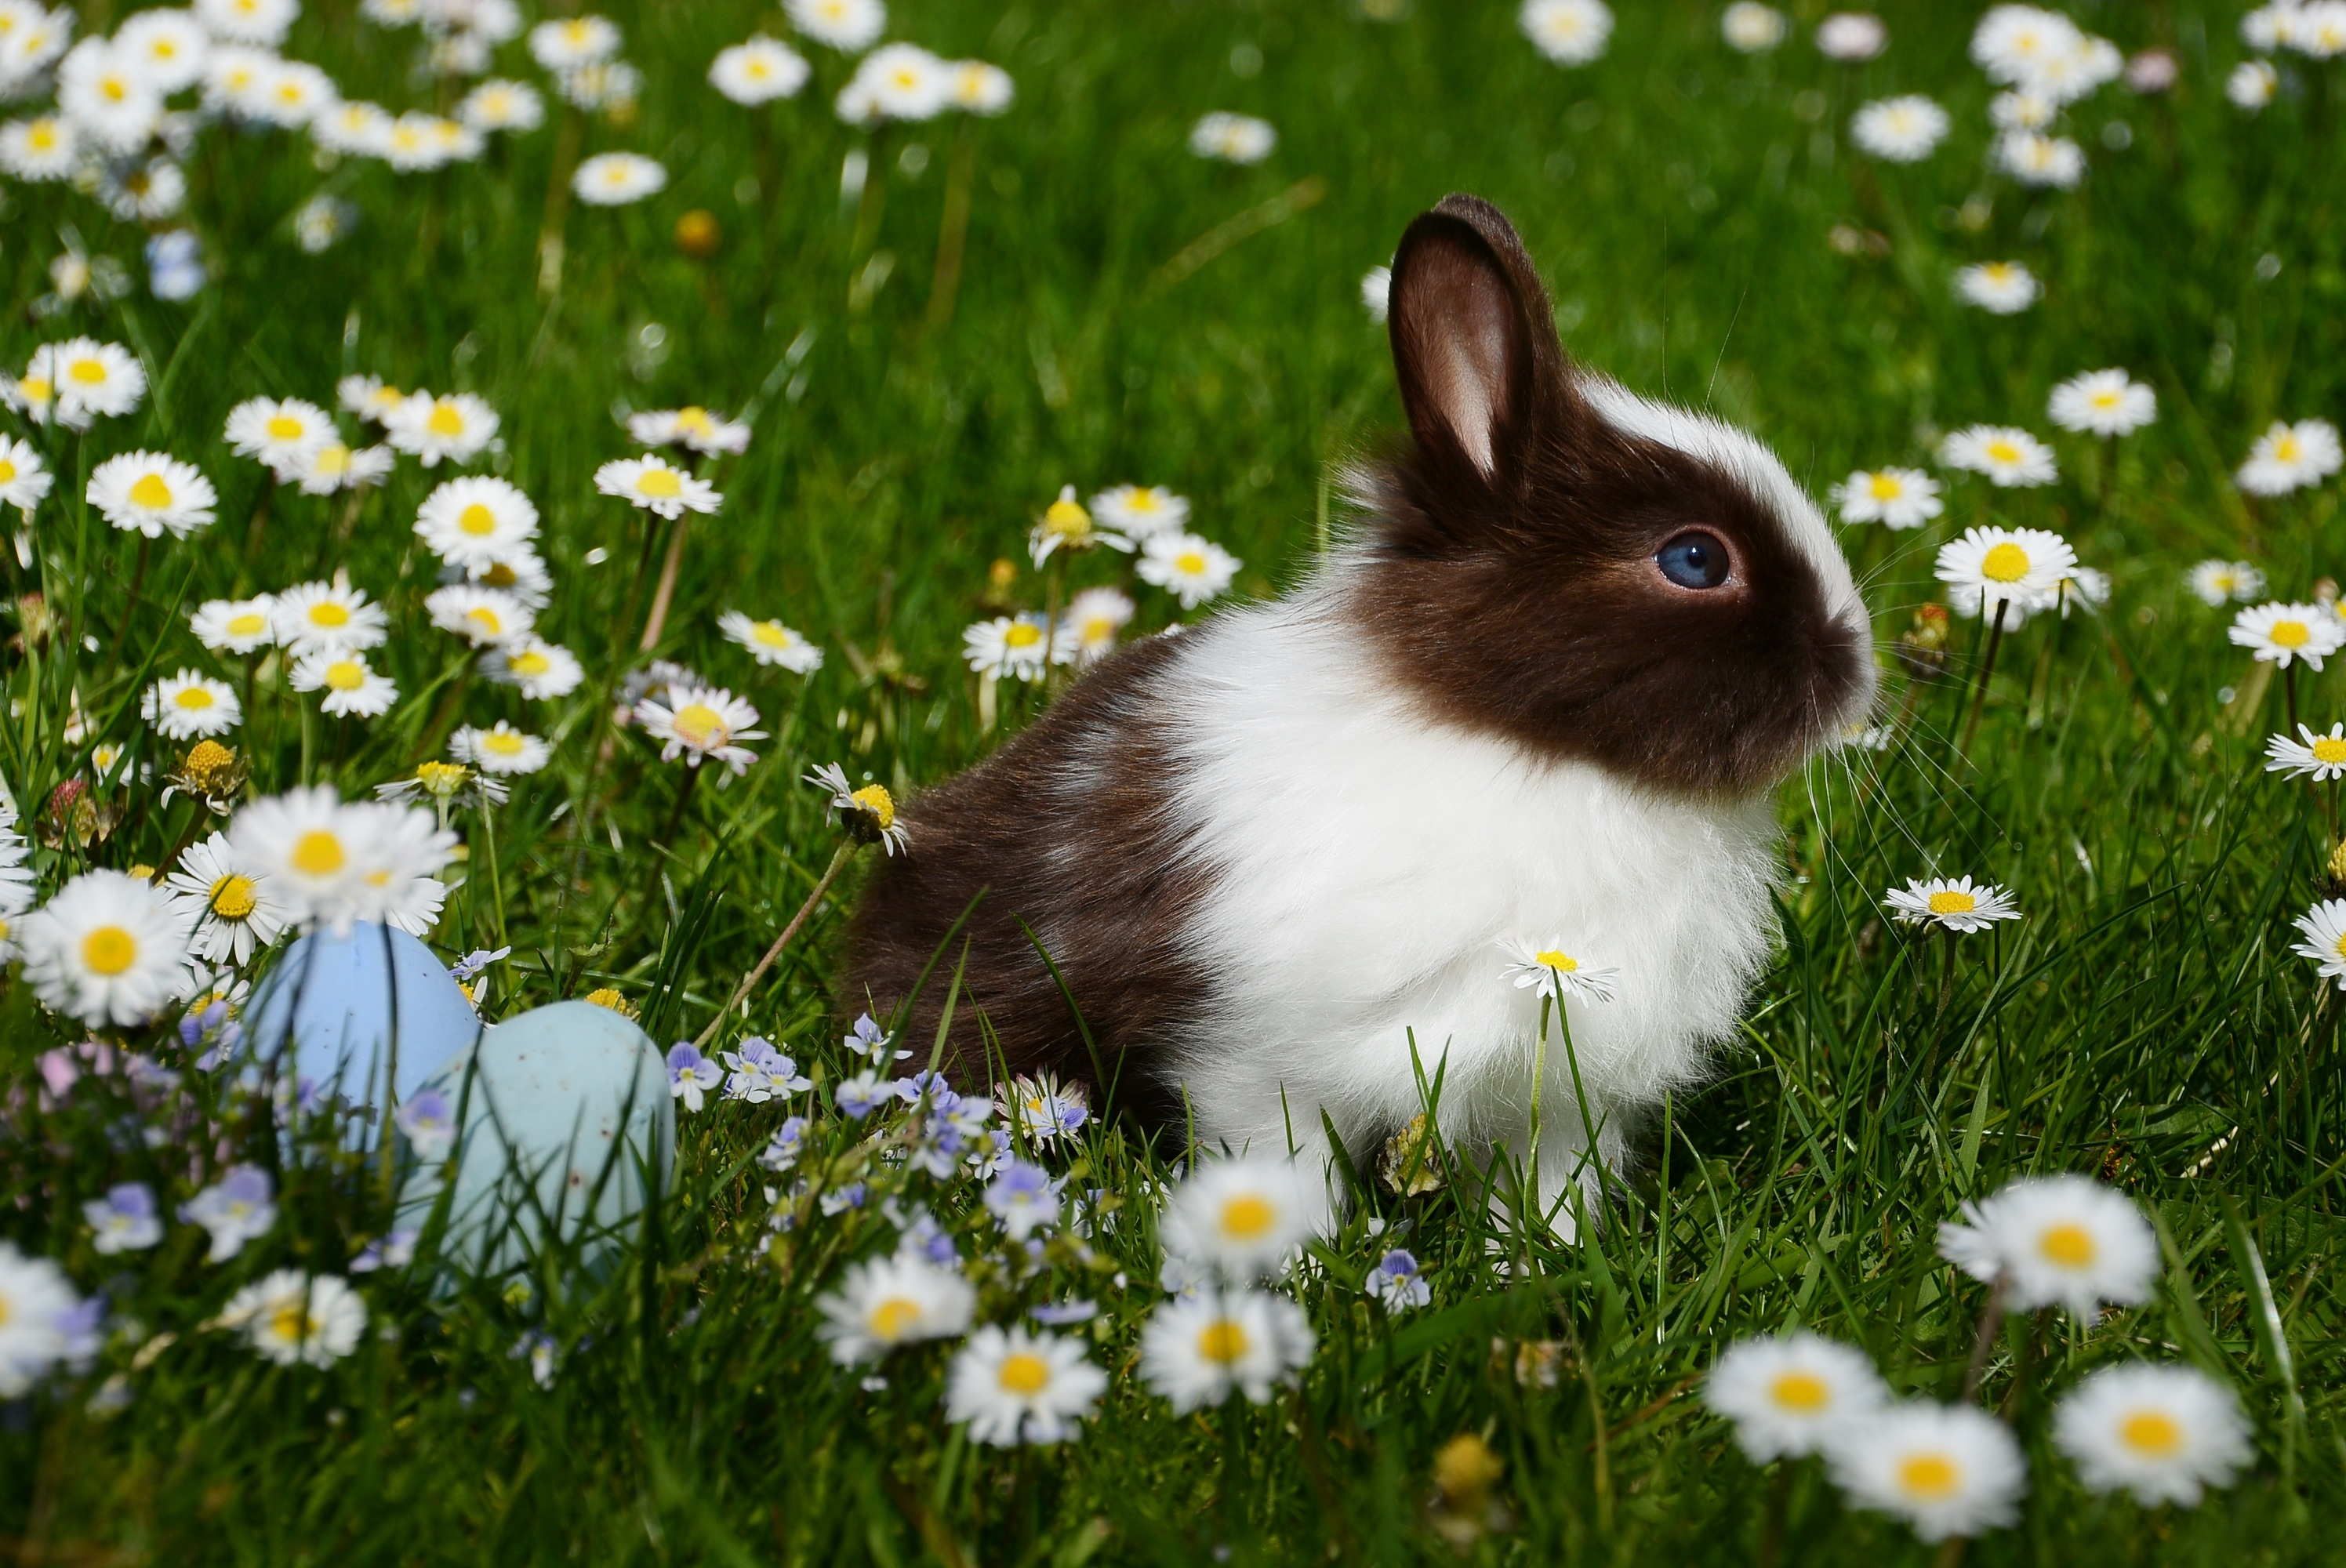 White and Brown Rabbit on Green Grass Field